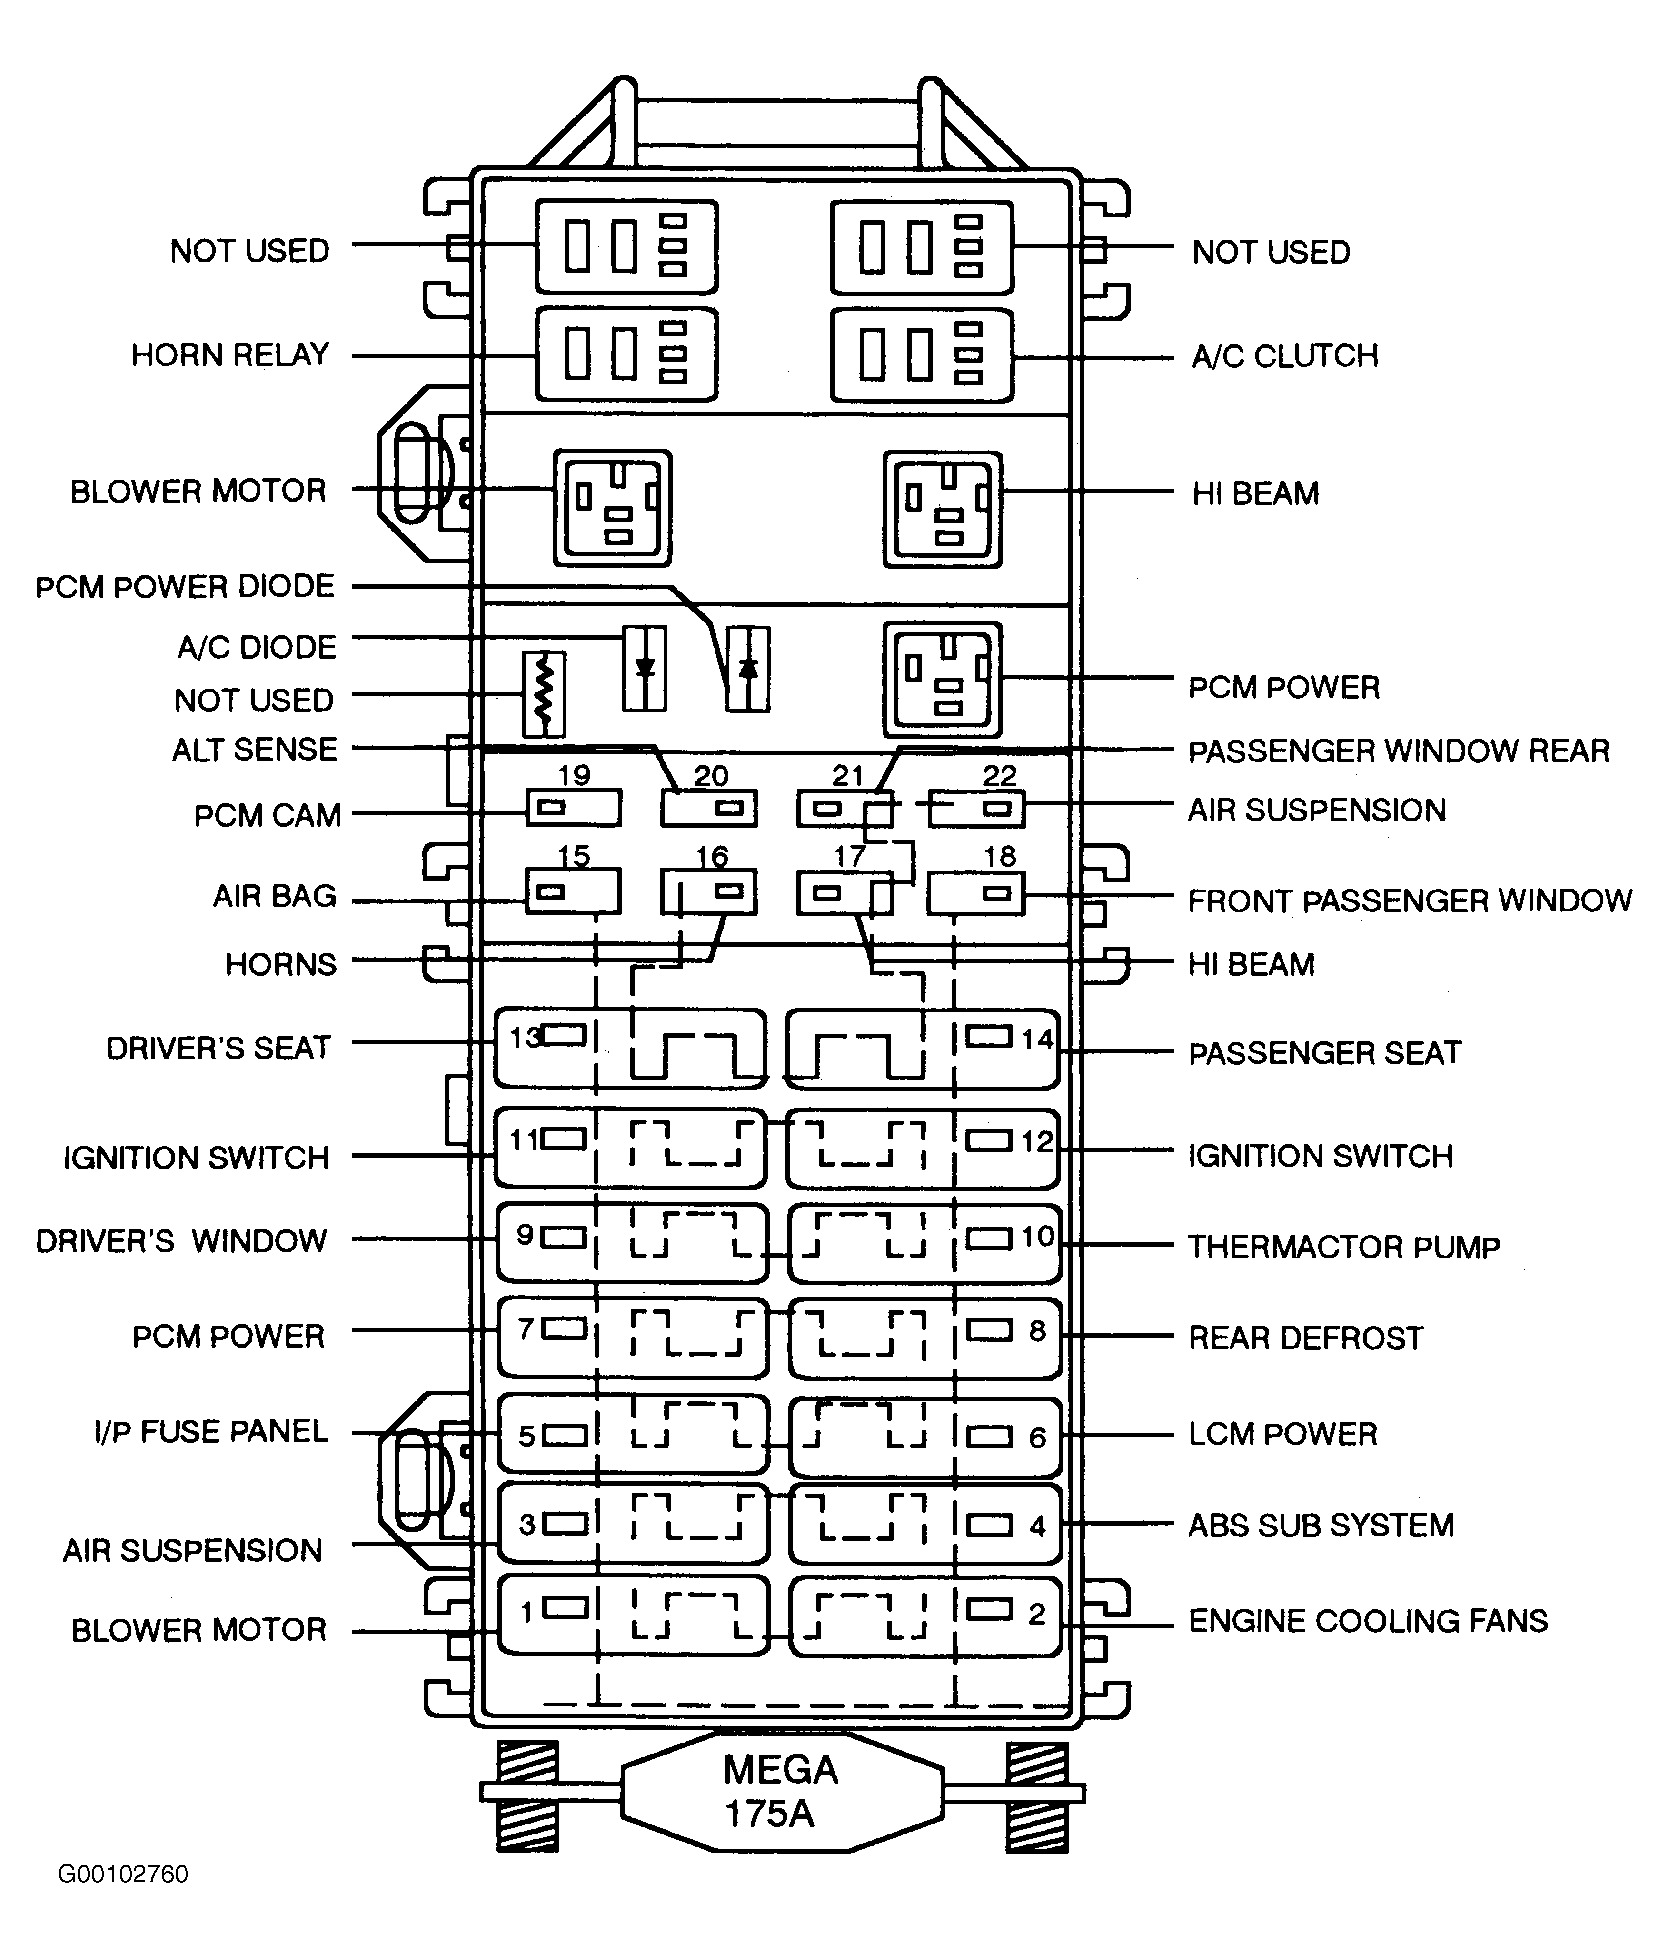 hight resolution of 1997 lincoln continental fuse box diagram wiring diagram